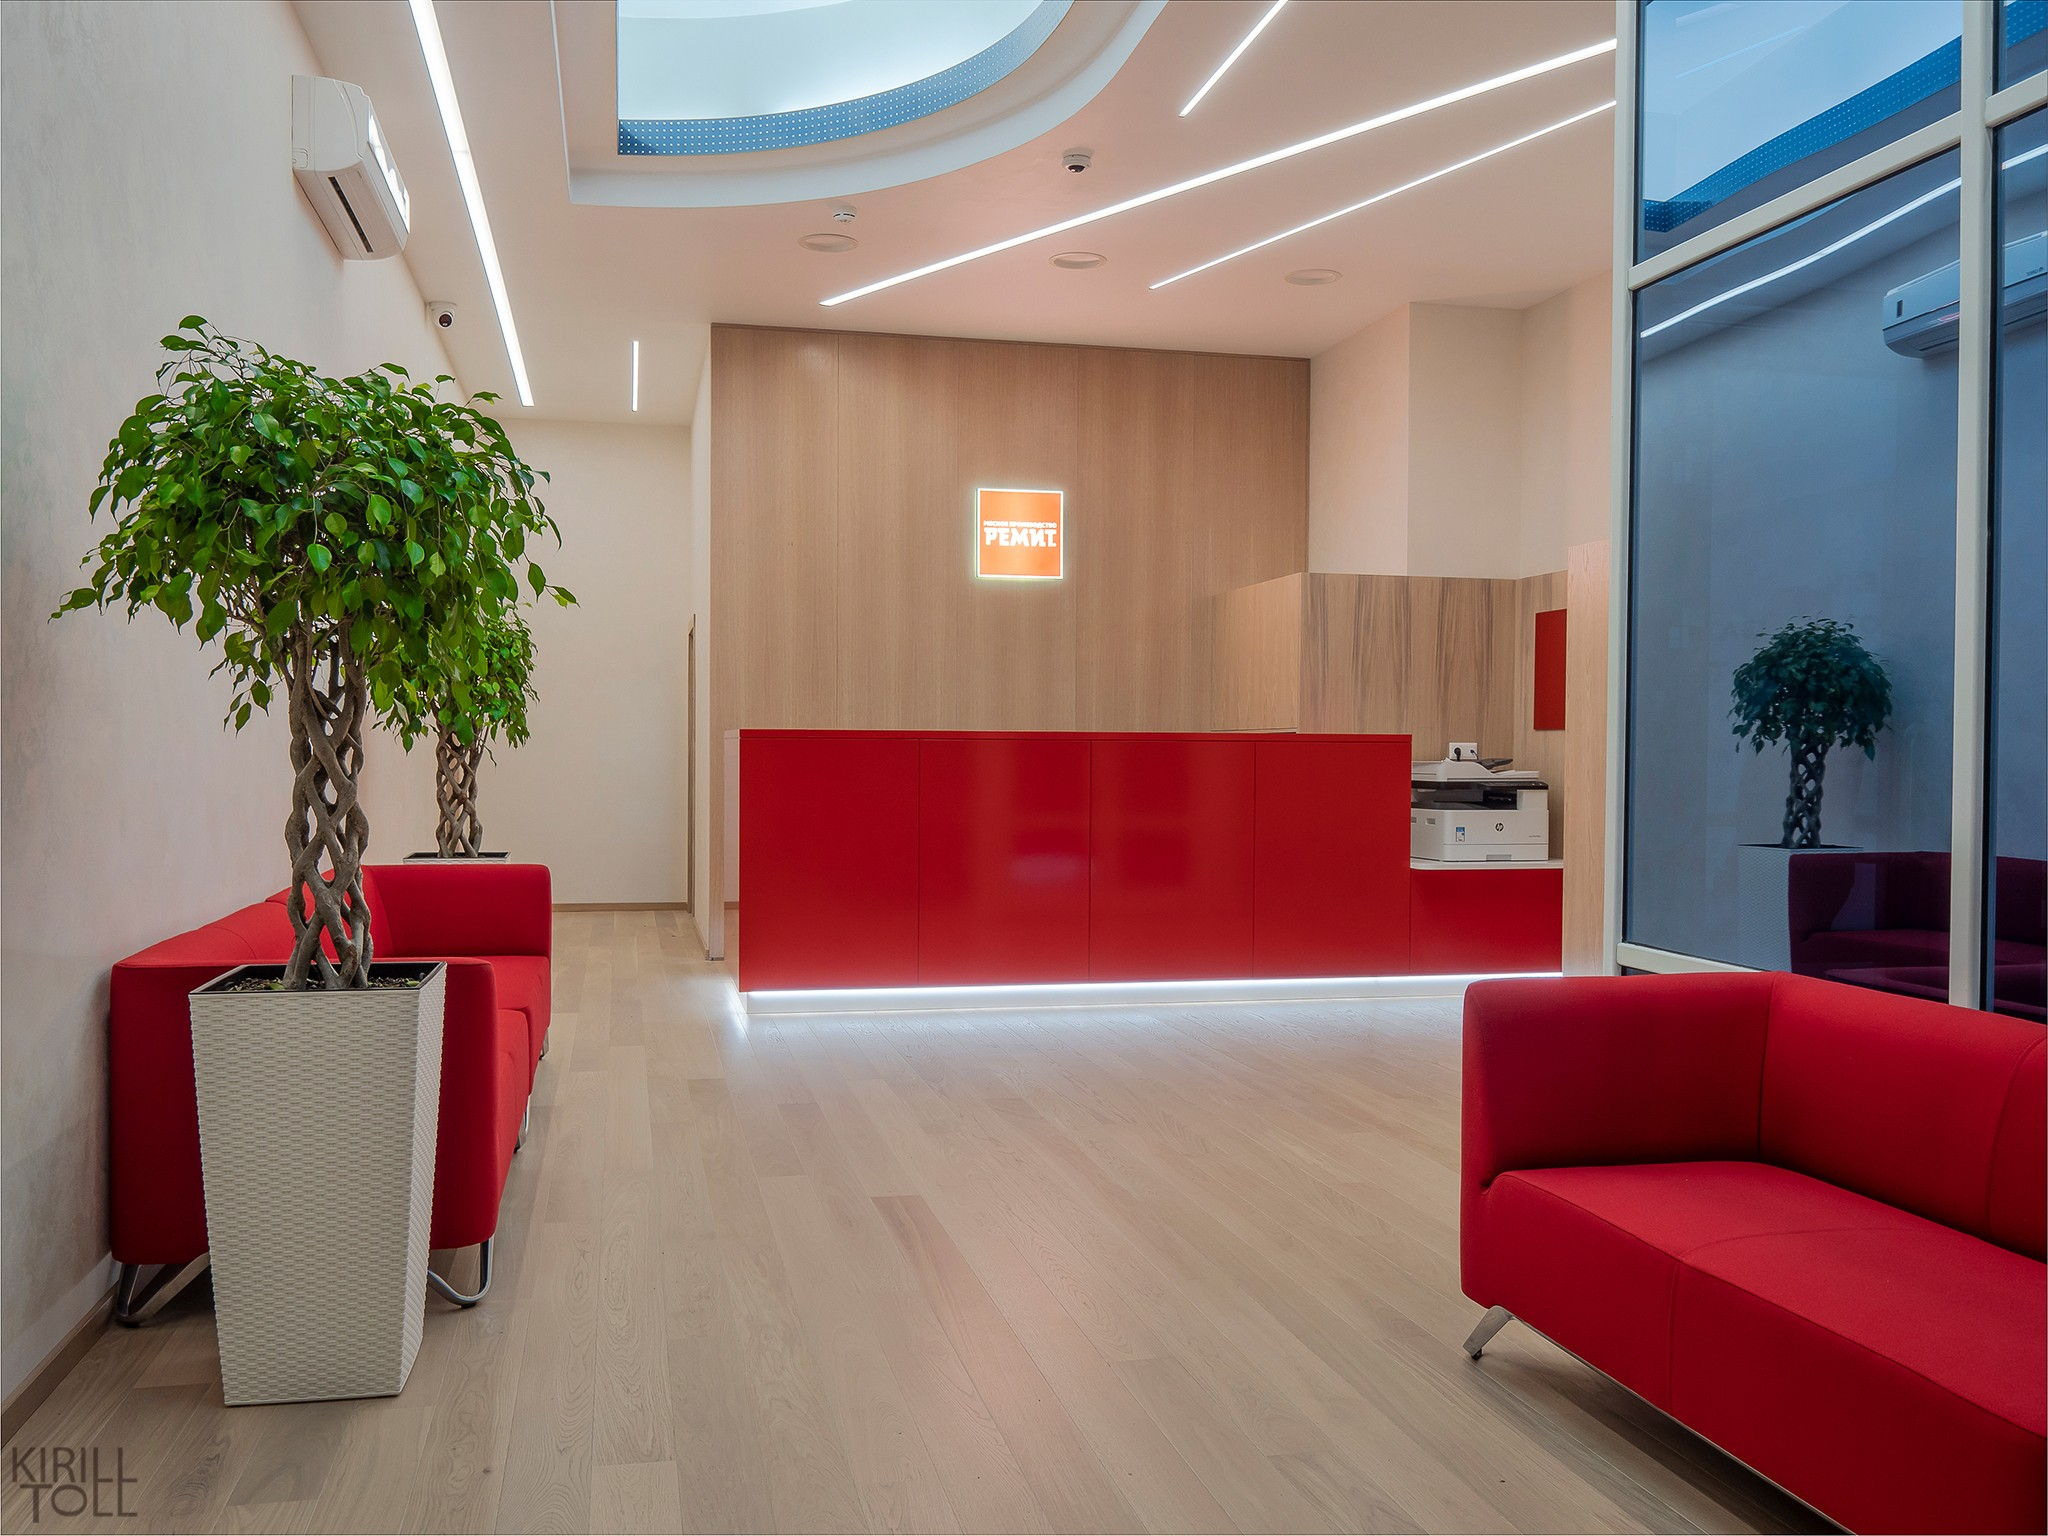 Furniture in the interior of the office. Professional photo Kirill Toll